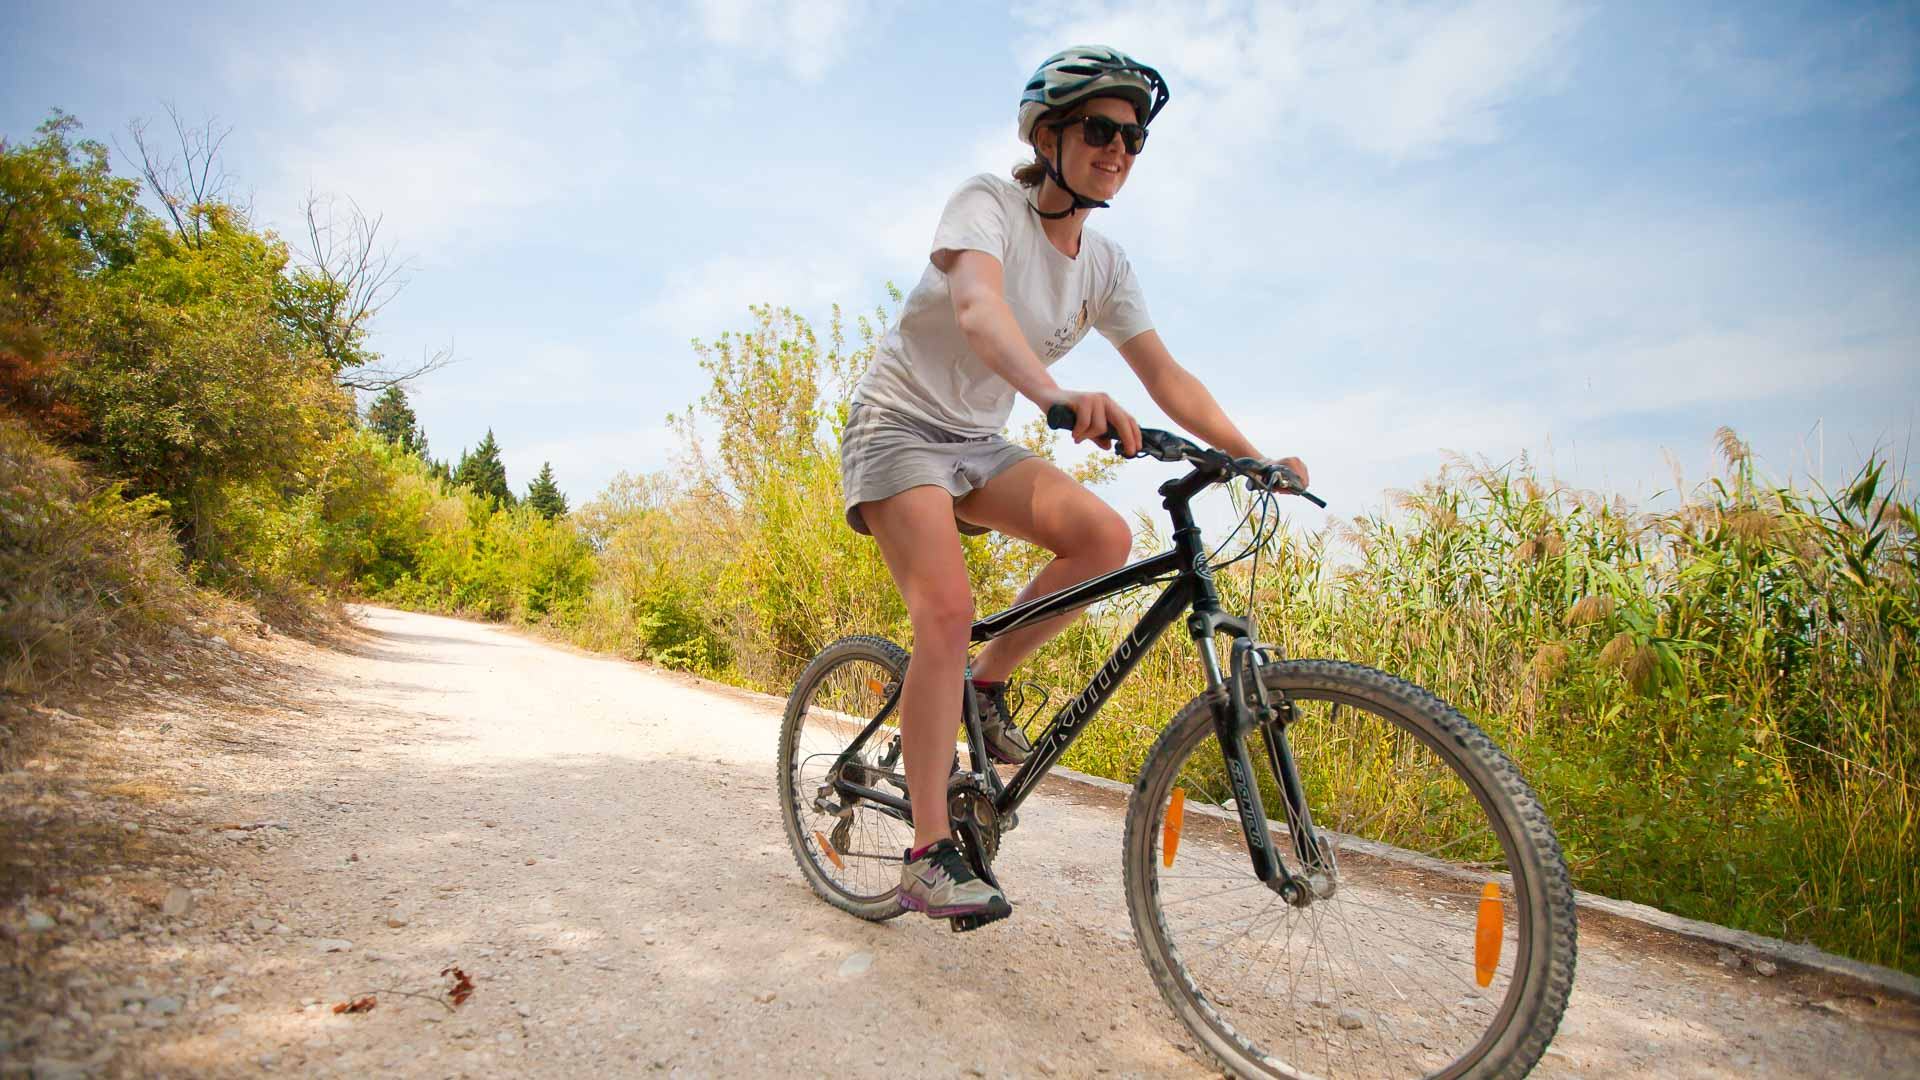 Cycle through the treetops, the perfect summer activity in Limberg